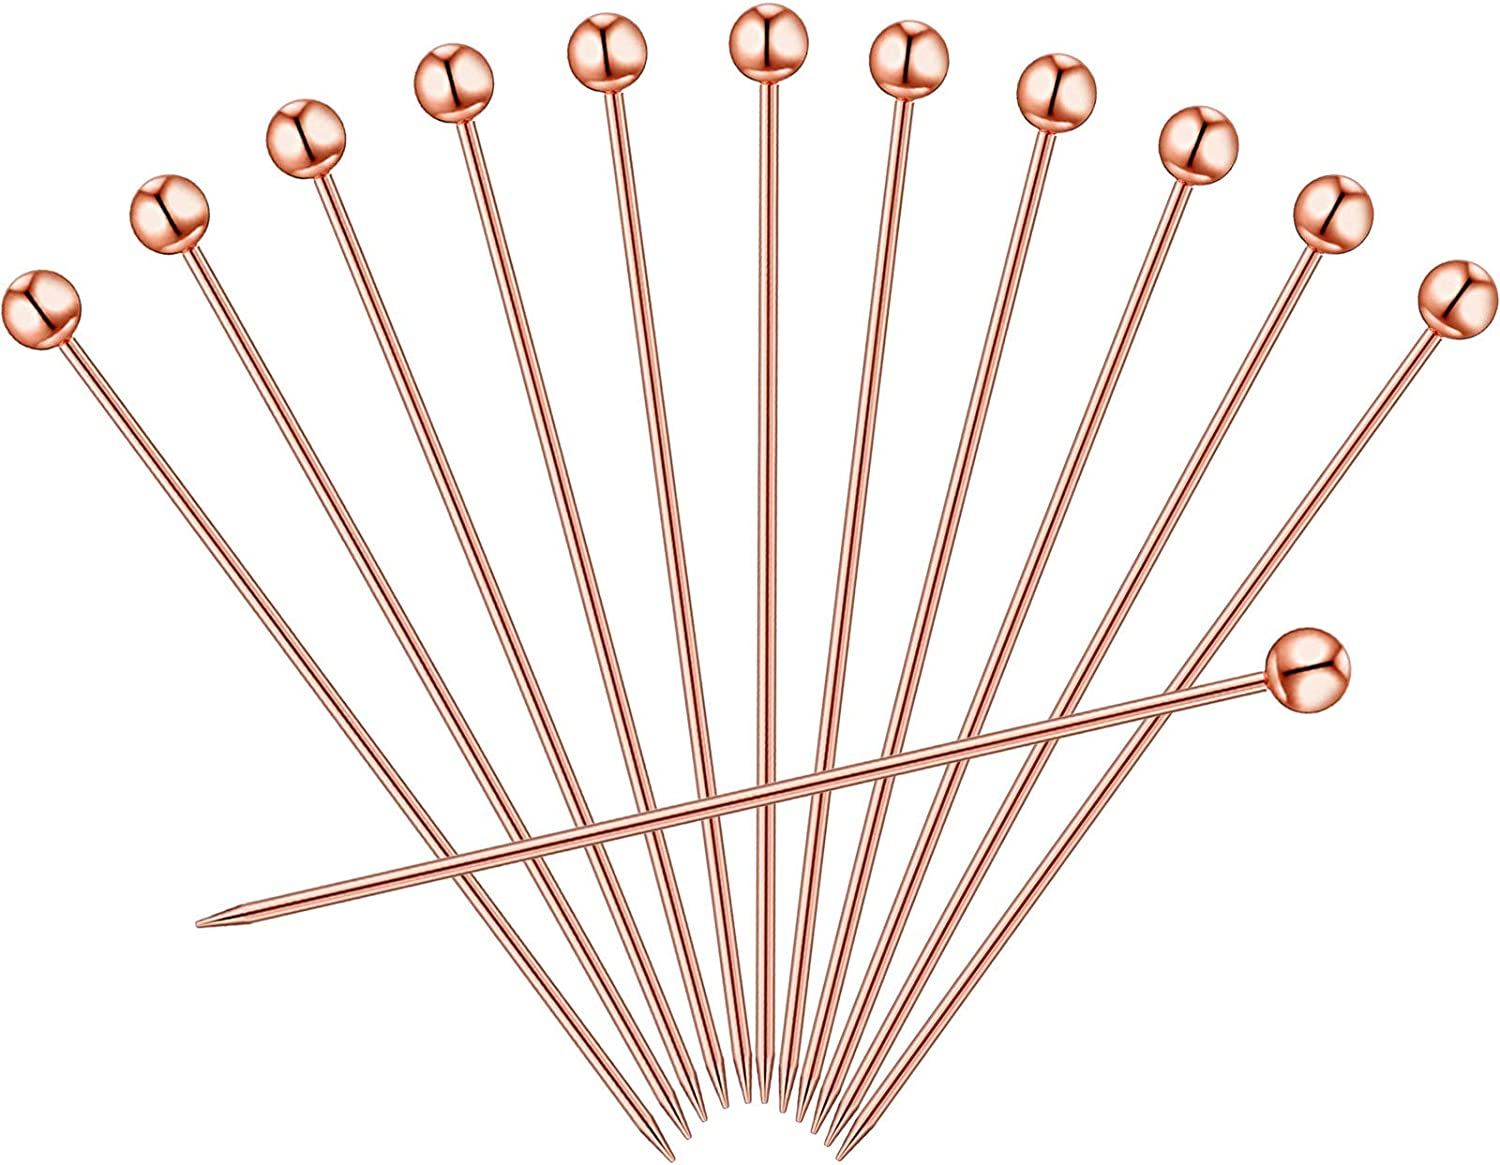 12 Copper Cocktail Picks Stainless Steel Pins 4 Inch, Rose Gold Cocktail Picks, Stainless Steel Martini Picks for Martinis Olives Appetizers Sandwich Hamburger Birthday Party Home Bar